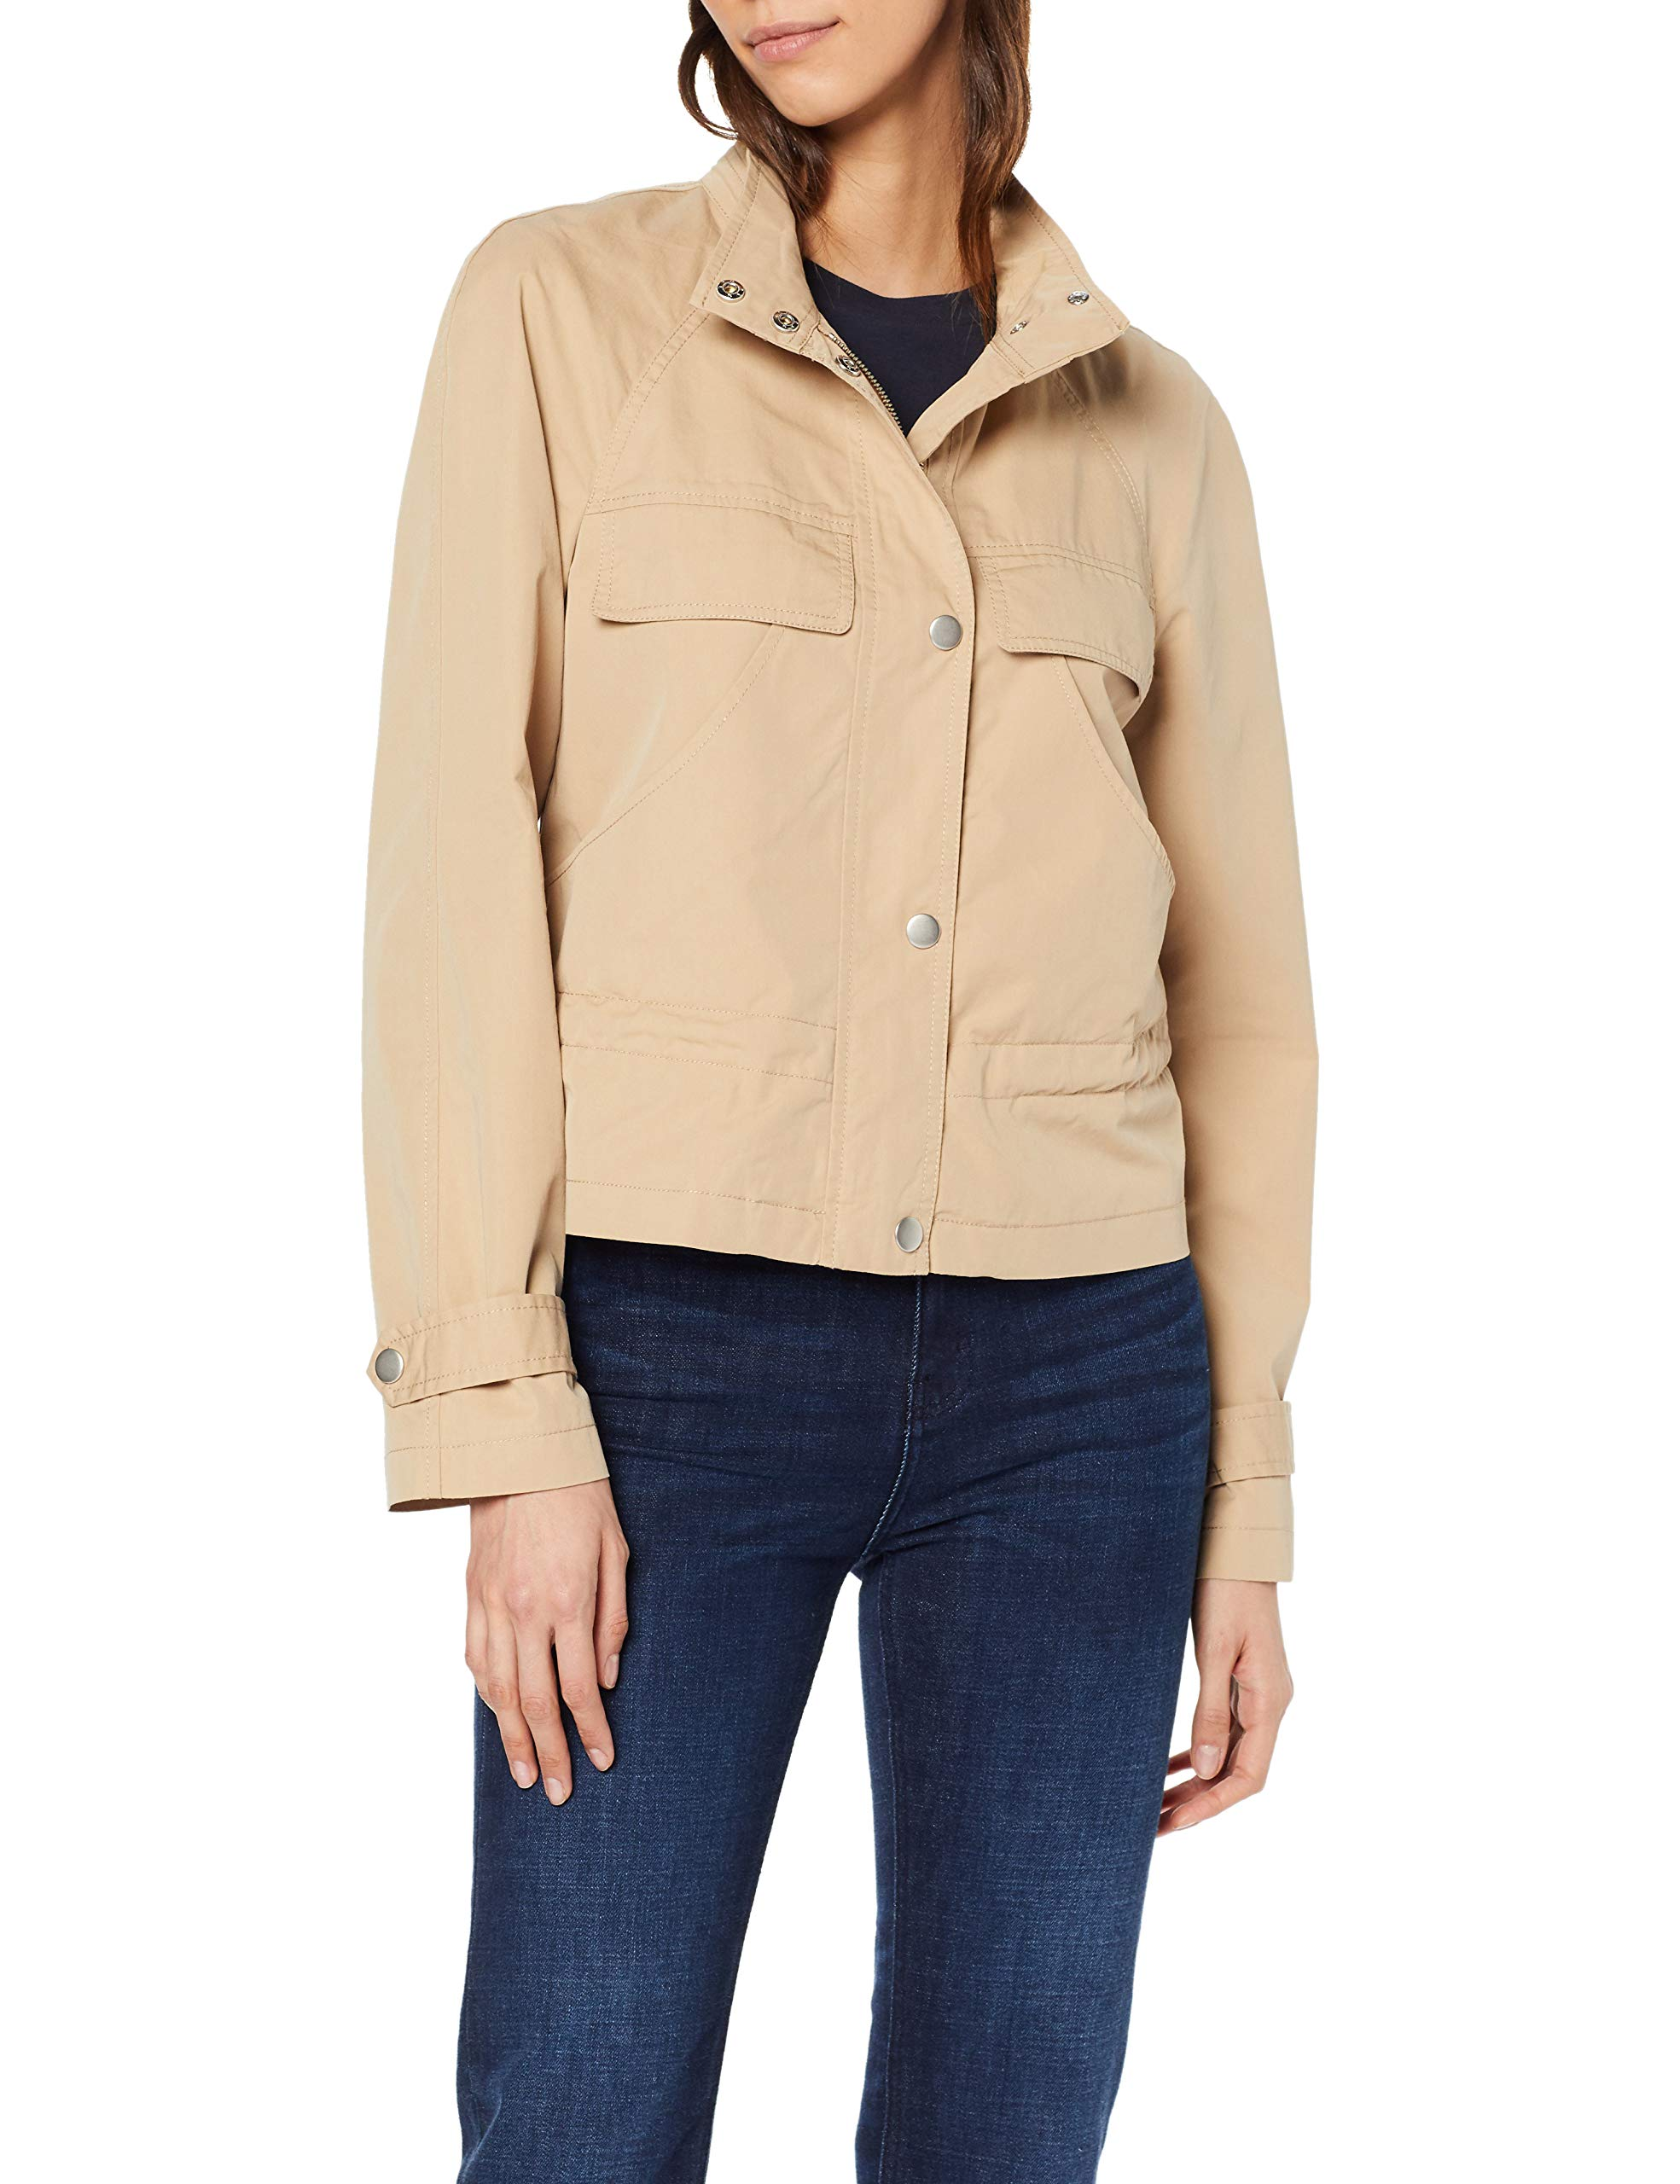 Of Jacket Fabricant40Femme Colors Manteaubeige United Benetton 393Uniquetaille ymw8n0OvN